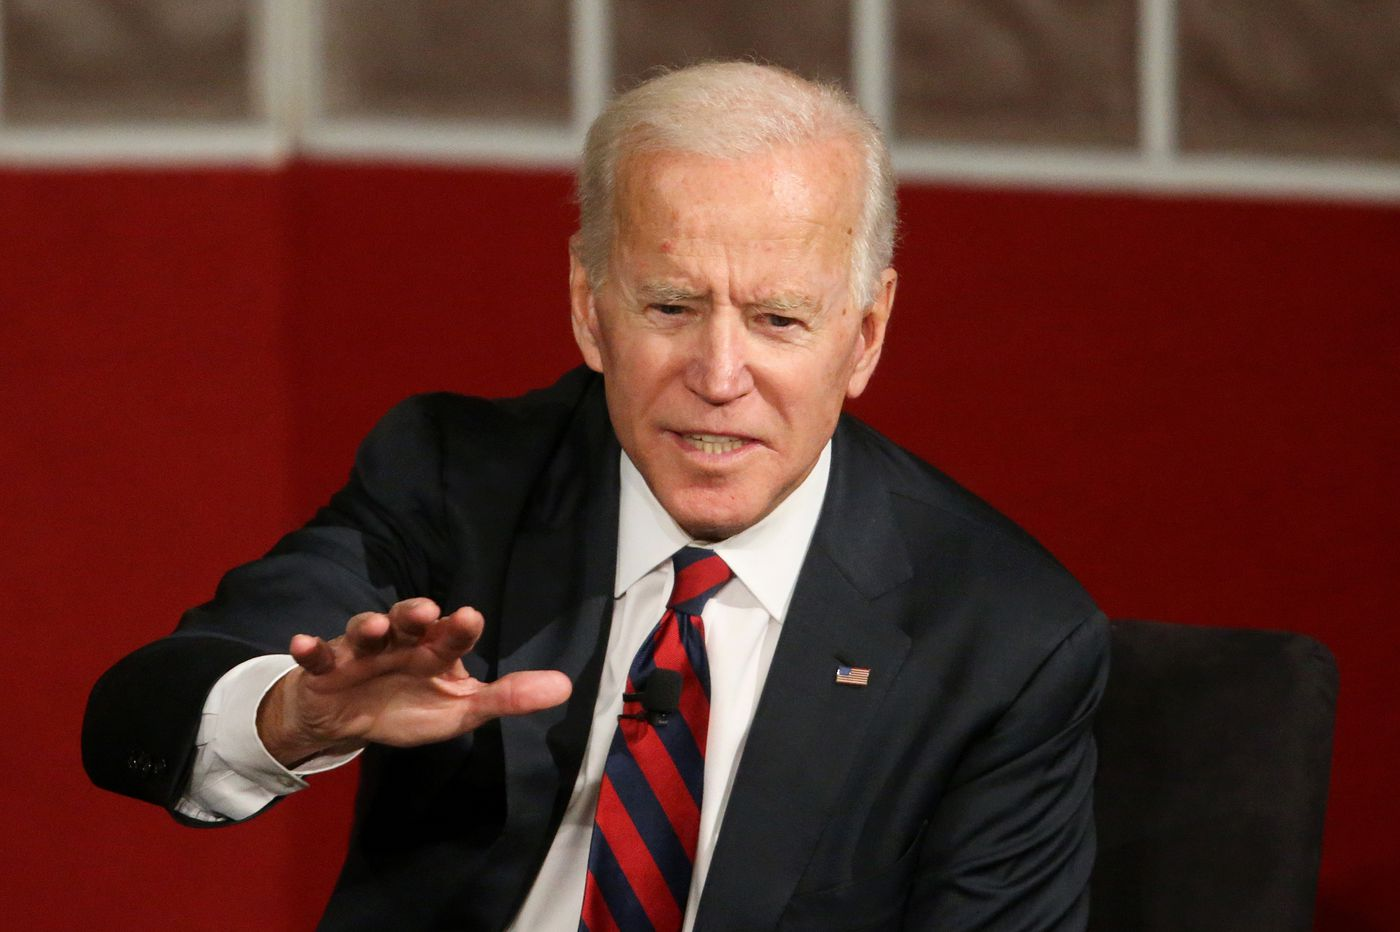 Joe Biden to Announce Bid for 2020 Presidency